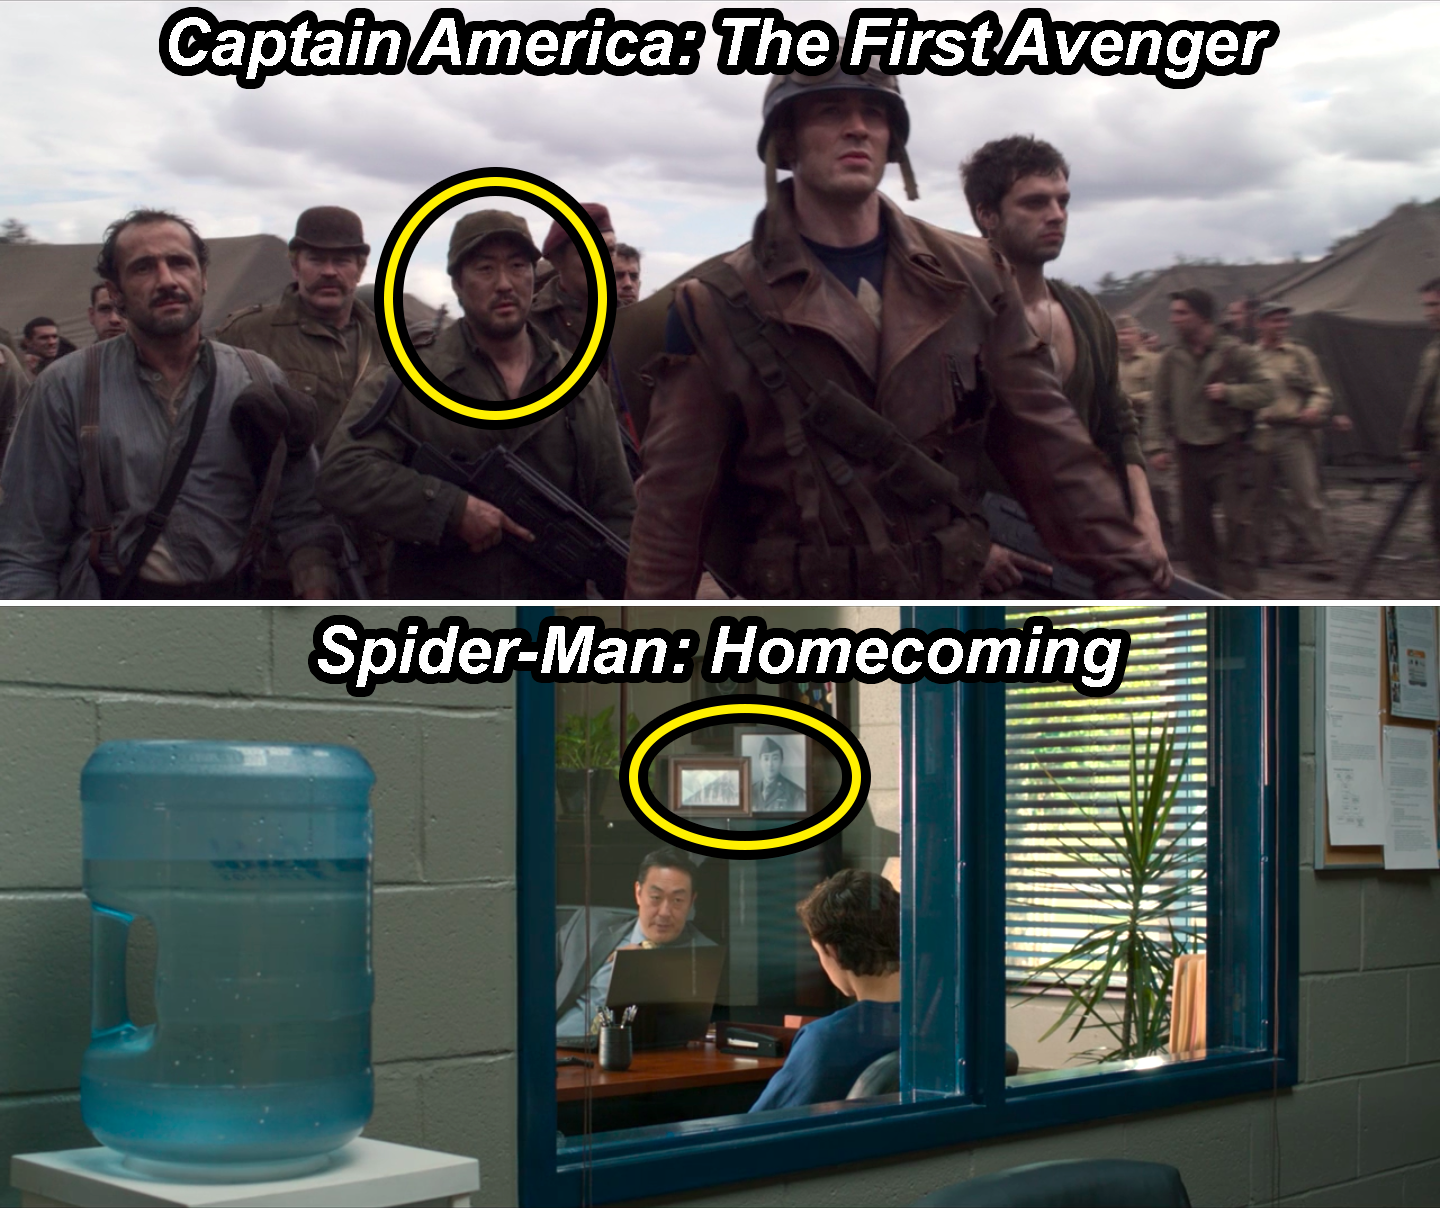 Jim Morita alongside Captain America in The First Avenger and a portrait of Jim in Principal Morita's office in Homecoming